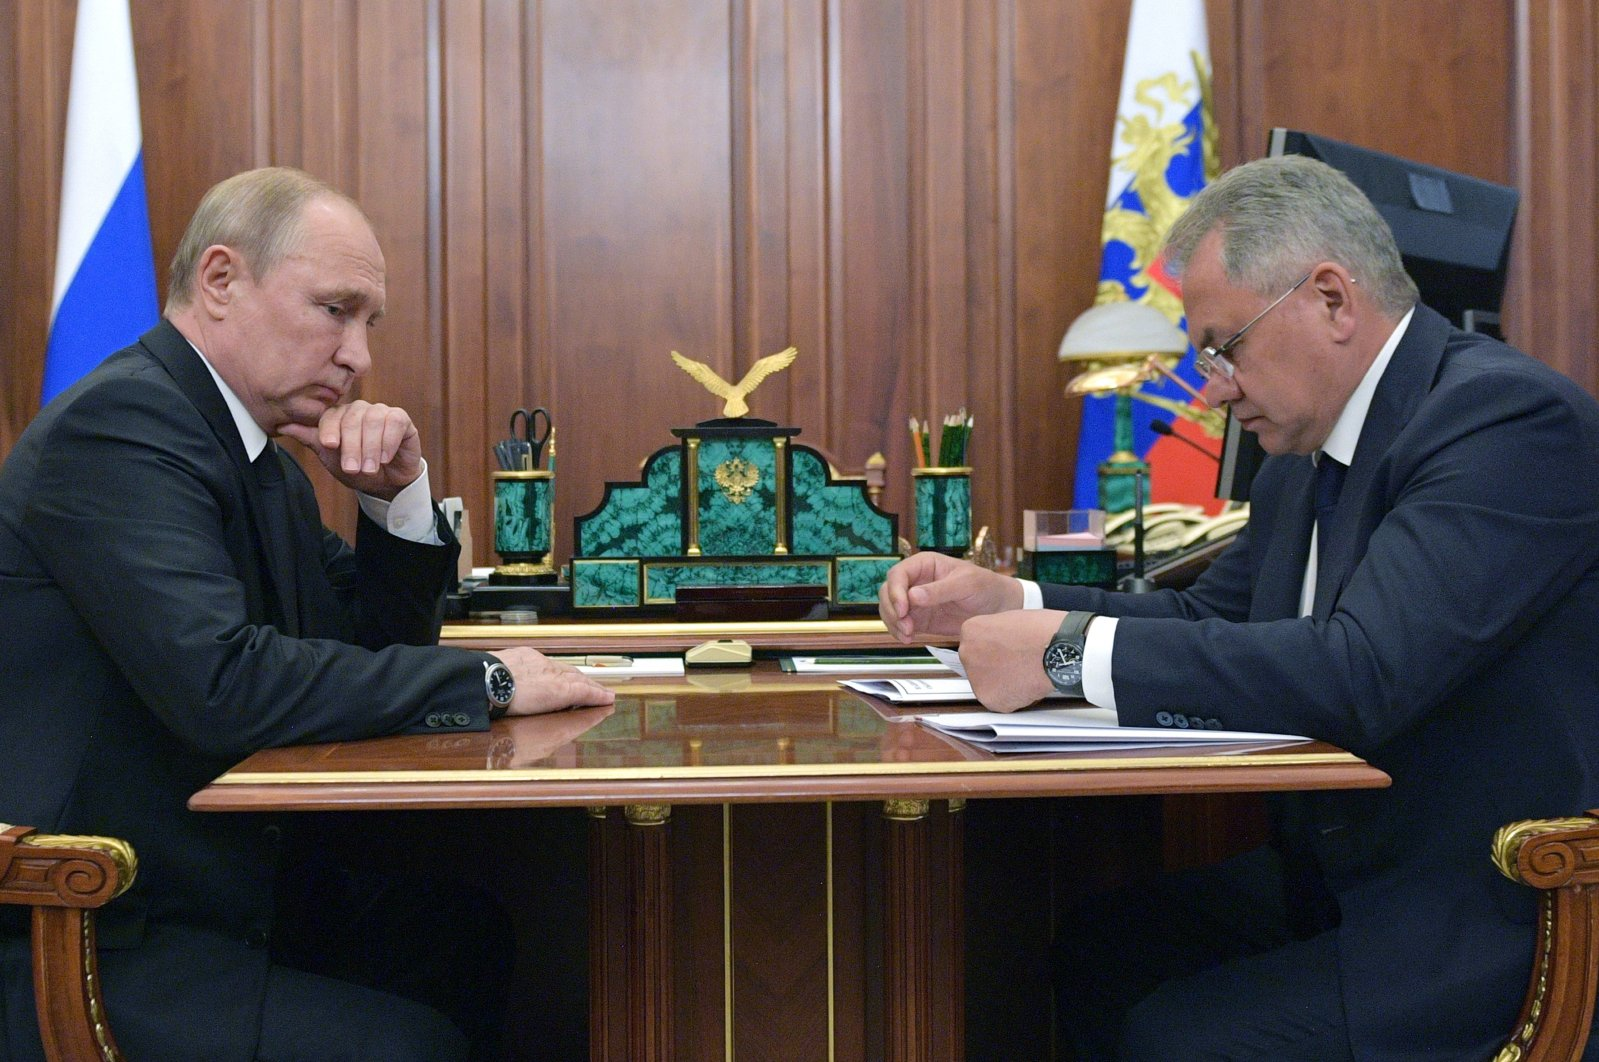 Russian President Vladimir Putin (L) listens to Russian Defense Minister Sergei Shoigu during their meeting in the Kremlin in Moscow, Russia, Tuesday, July 2, 2019. (AP Photo)